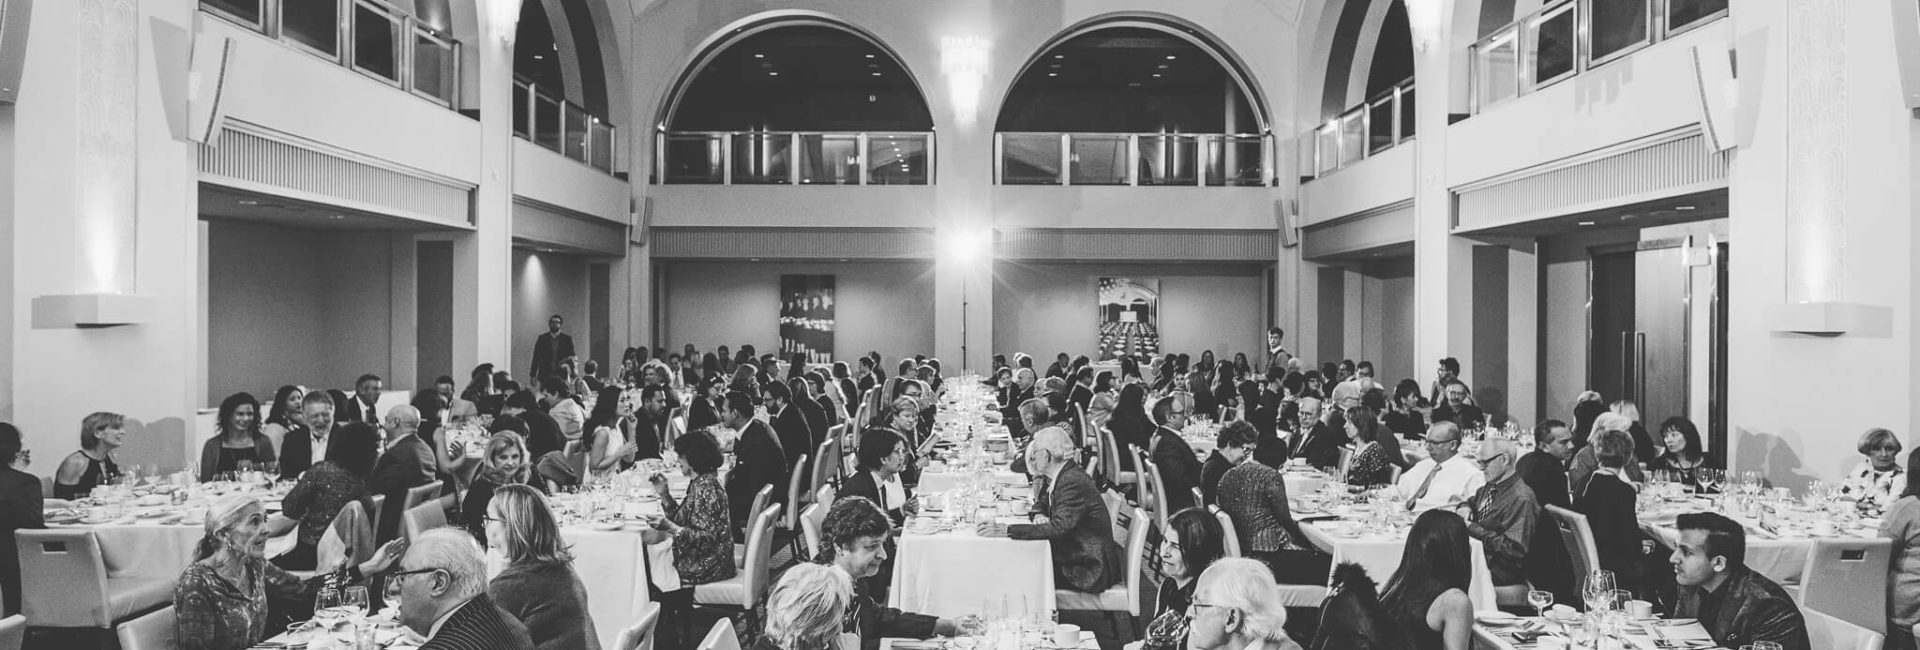 black & white photo of several people conversing over dinner in arcadian court event venue